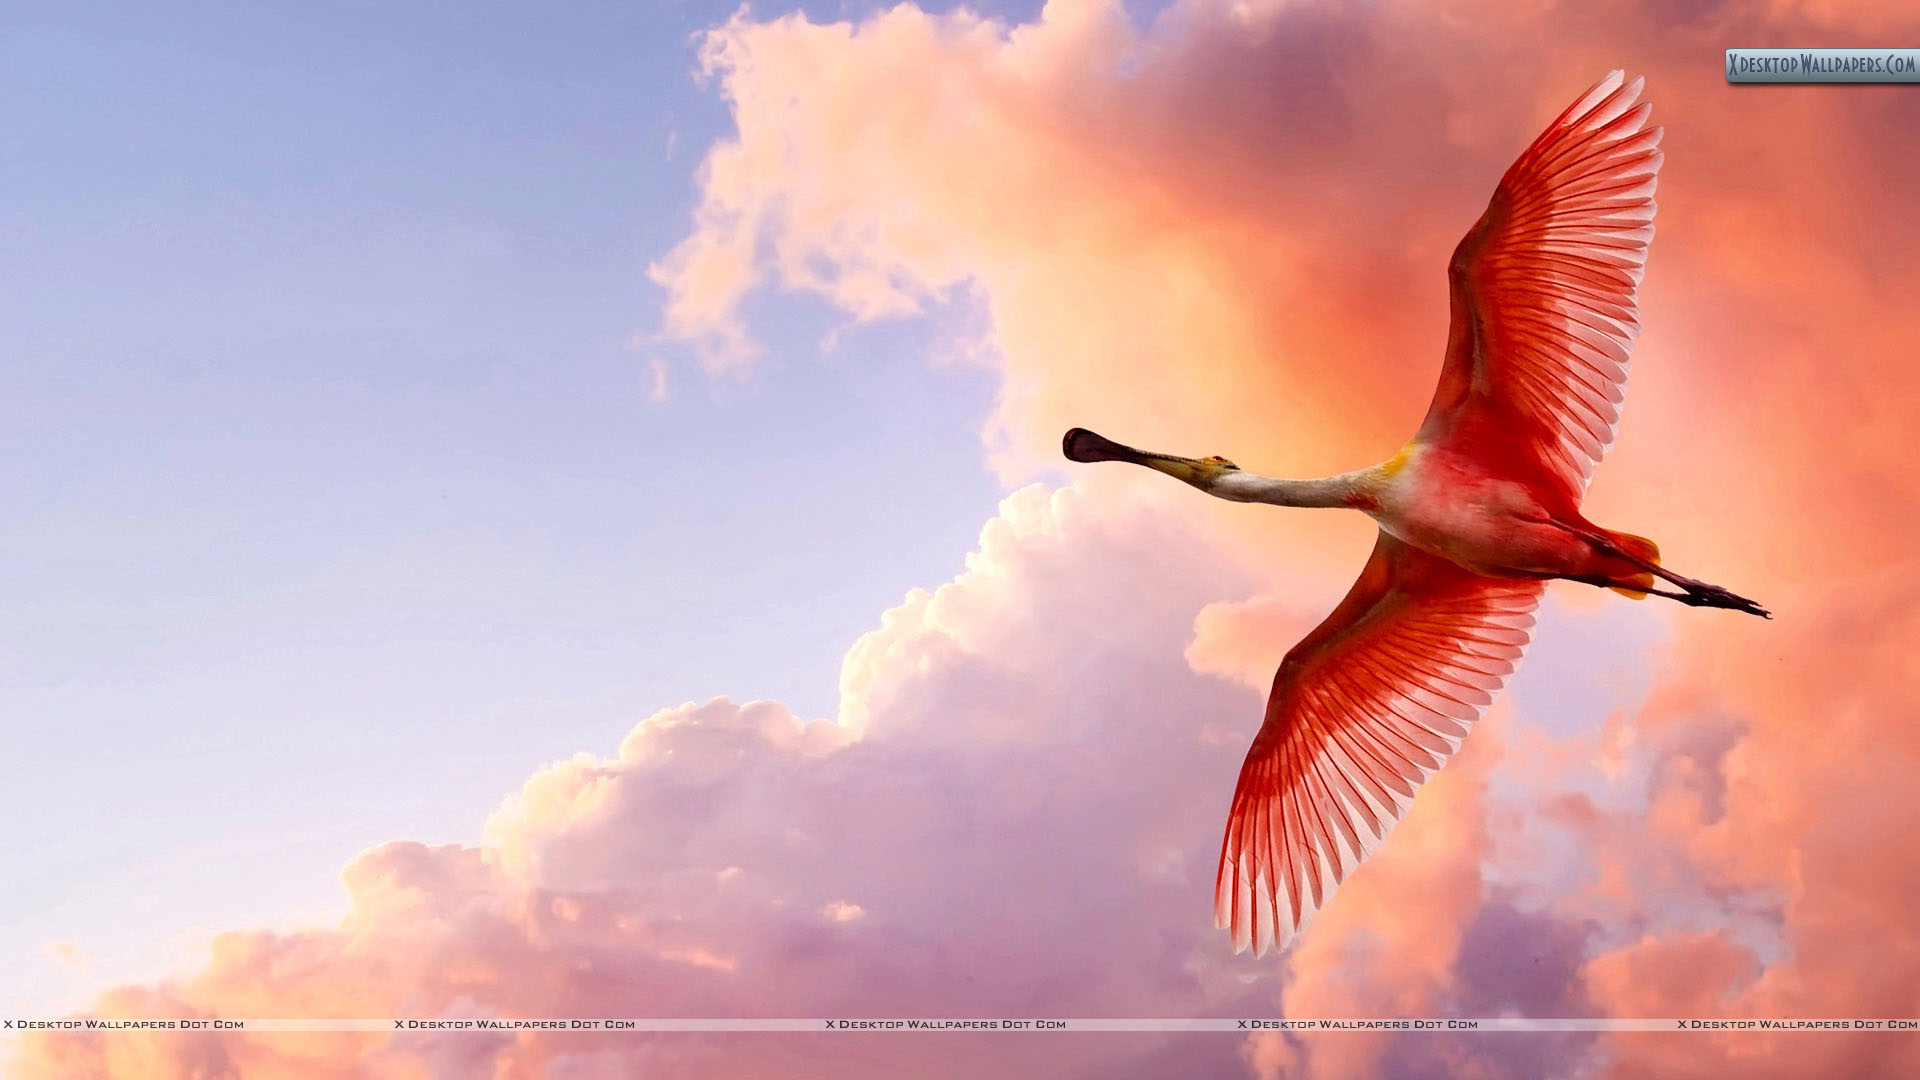 birds wallpapers, photos & images in hd